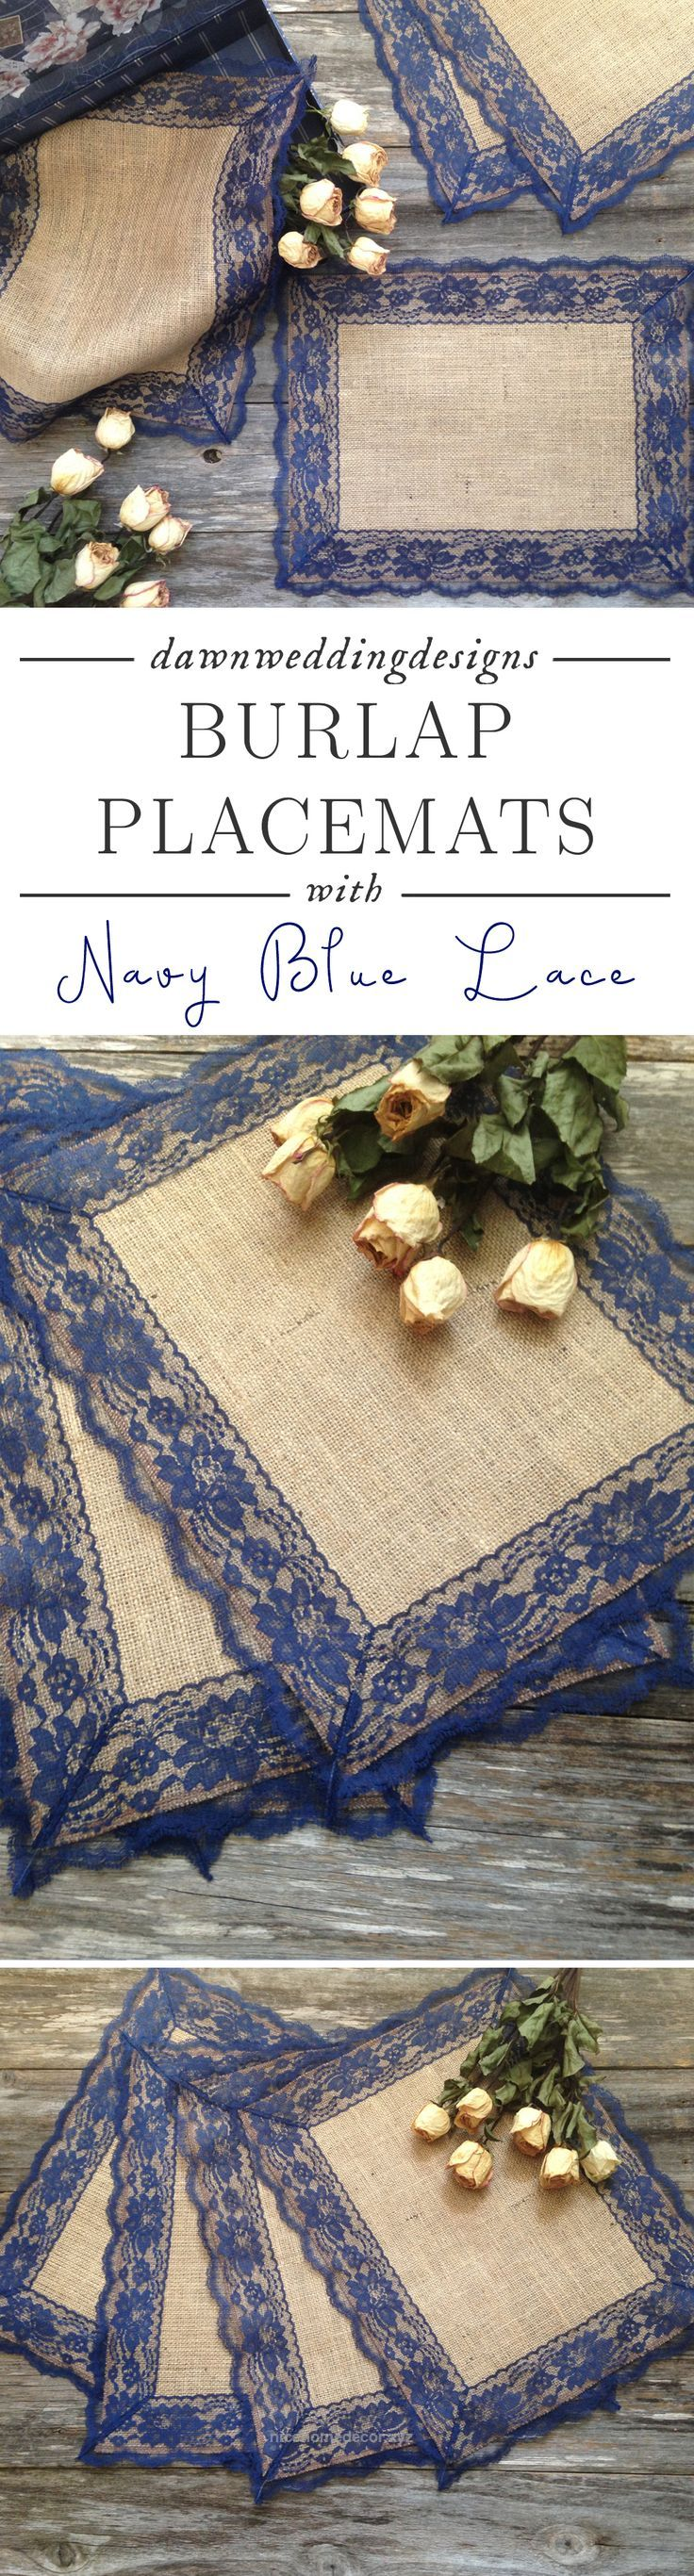 Excellent Rustic Navy Blue Wedding D̩cor РRustic Placemats РBurlap and NAVY / DARK BLUE Lace, Wedding Placemat, Rustic Country Wedding, Country Home Decor, French Country Cottage Th ..